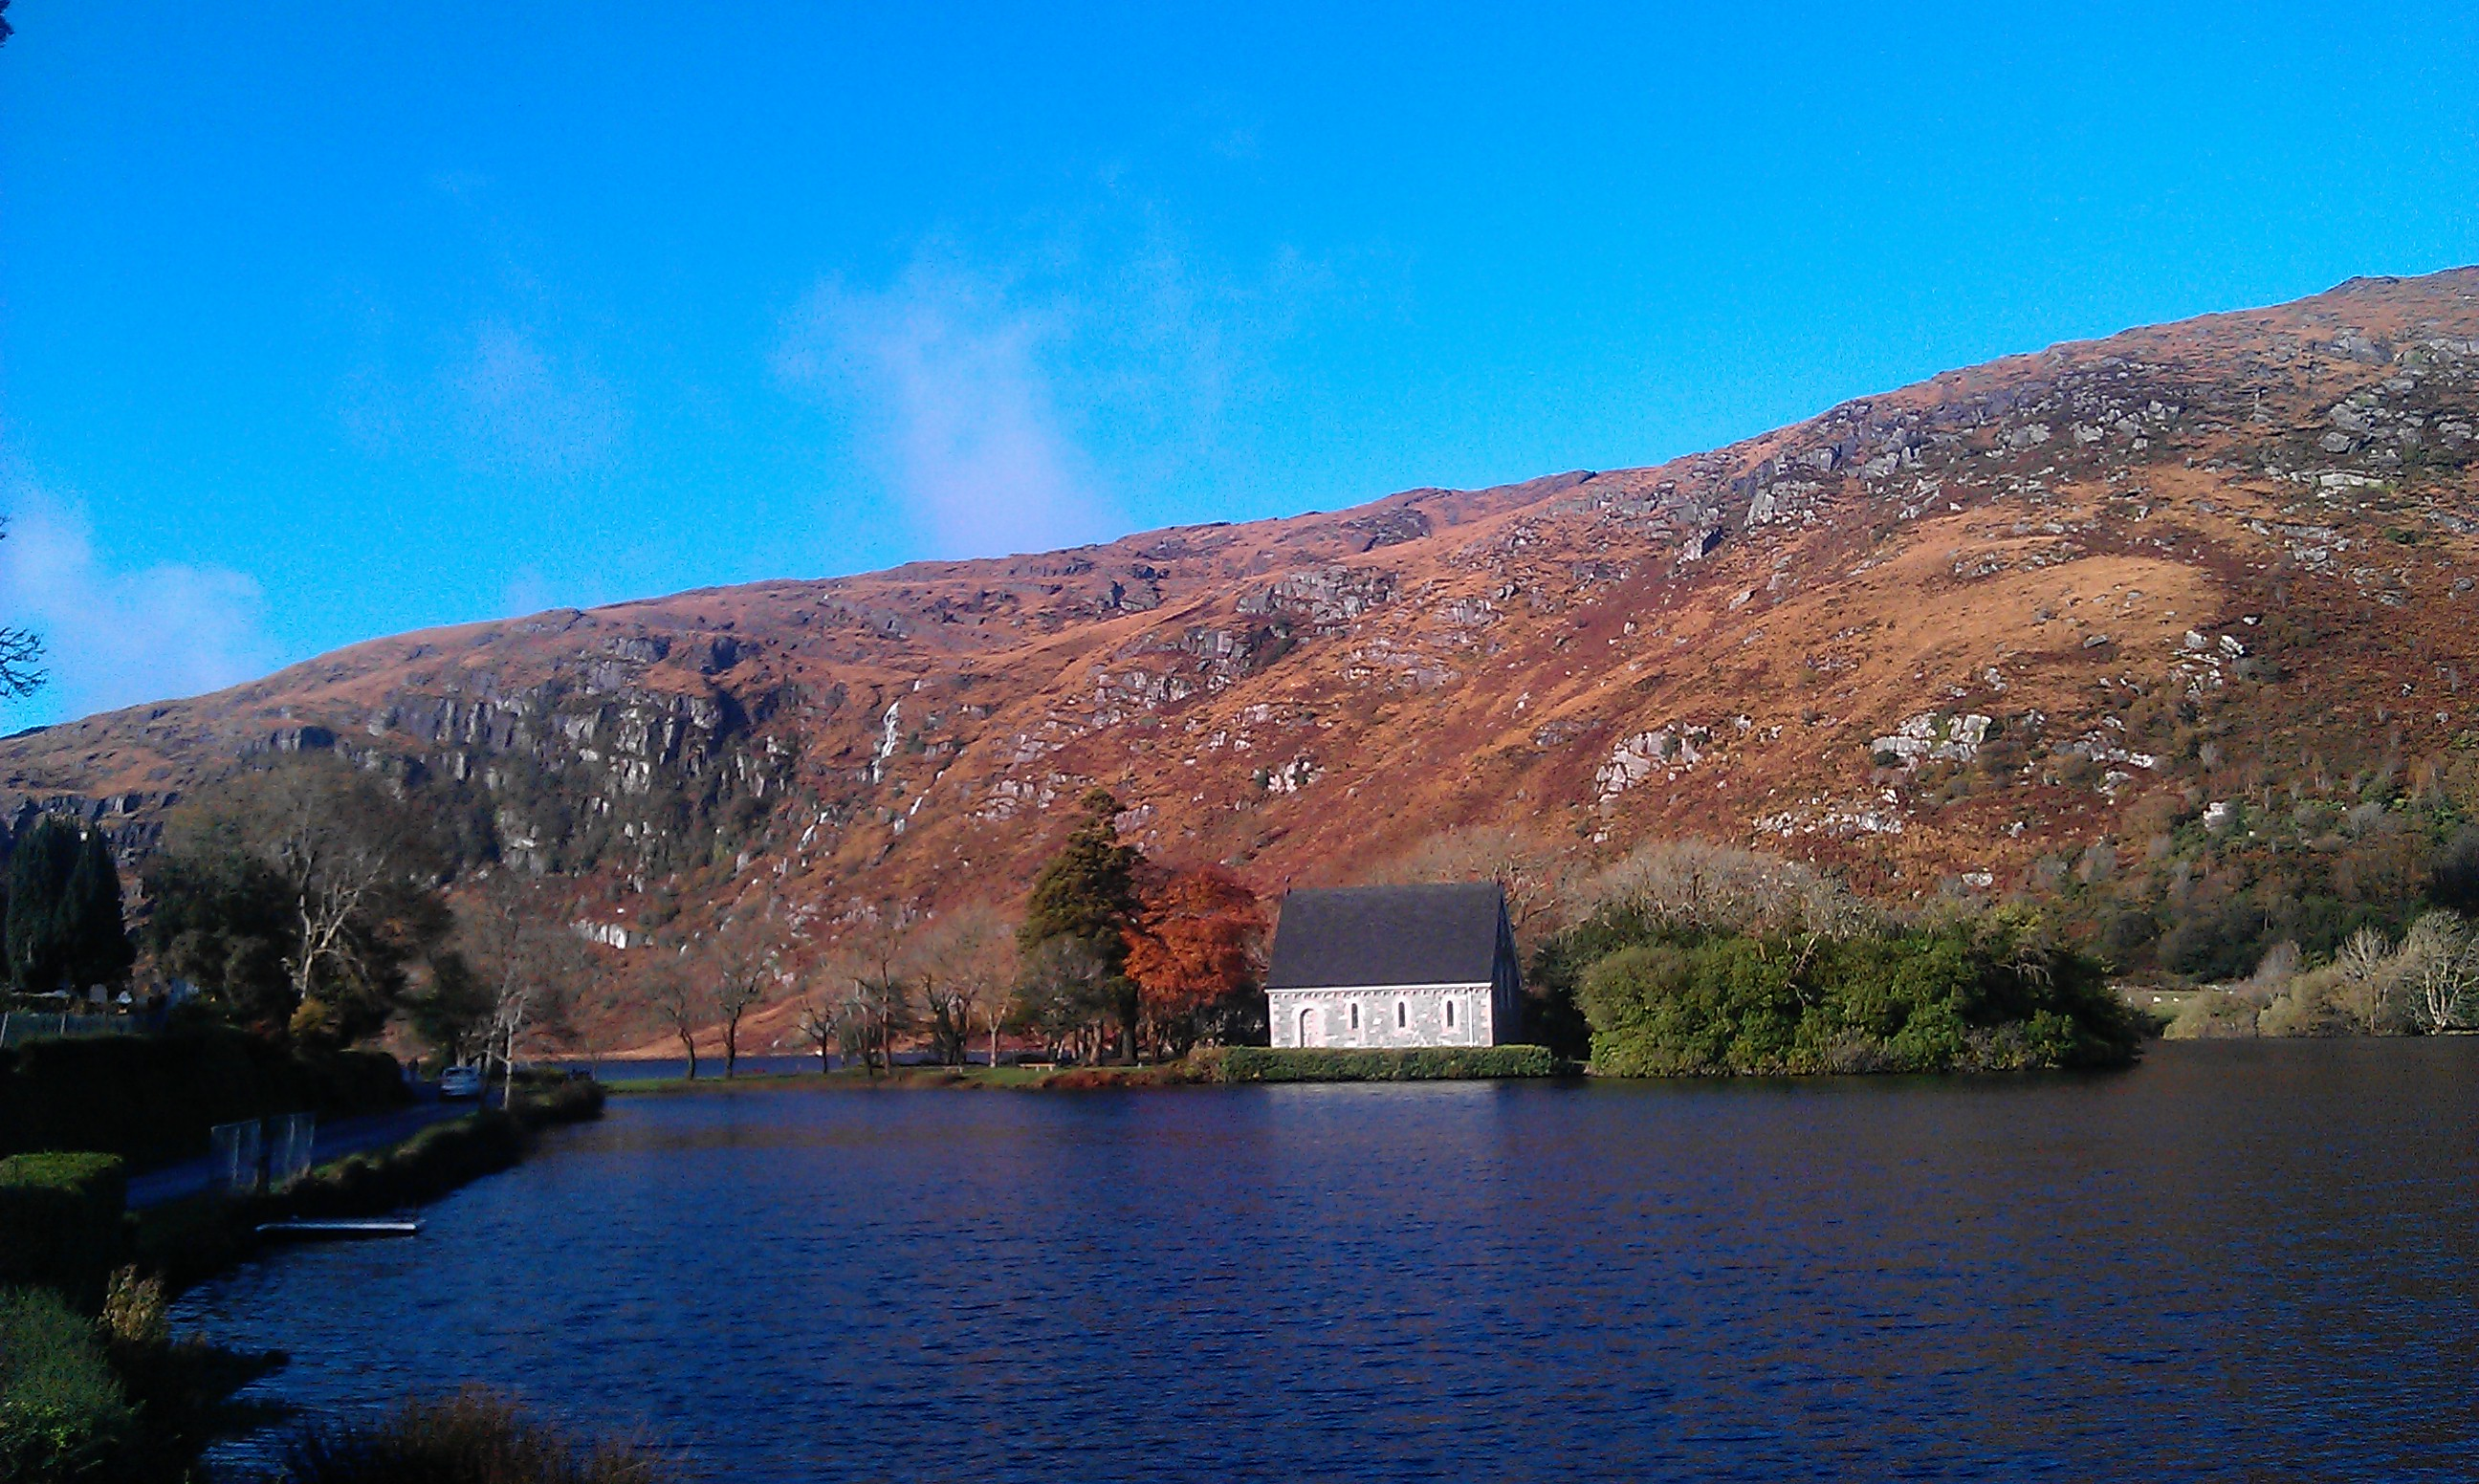 Gougane Barra church - Suzanne Burns